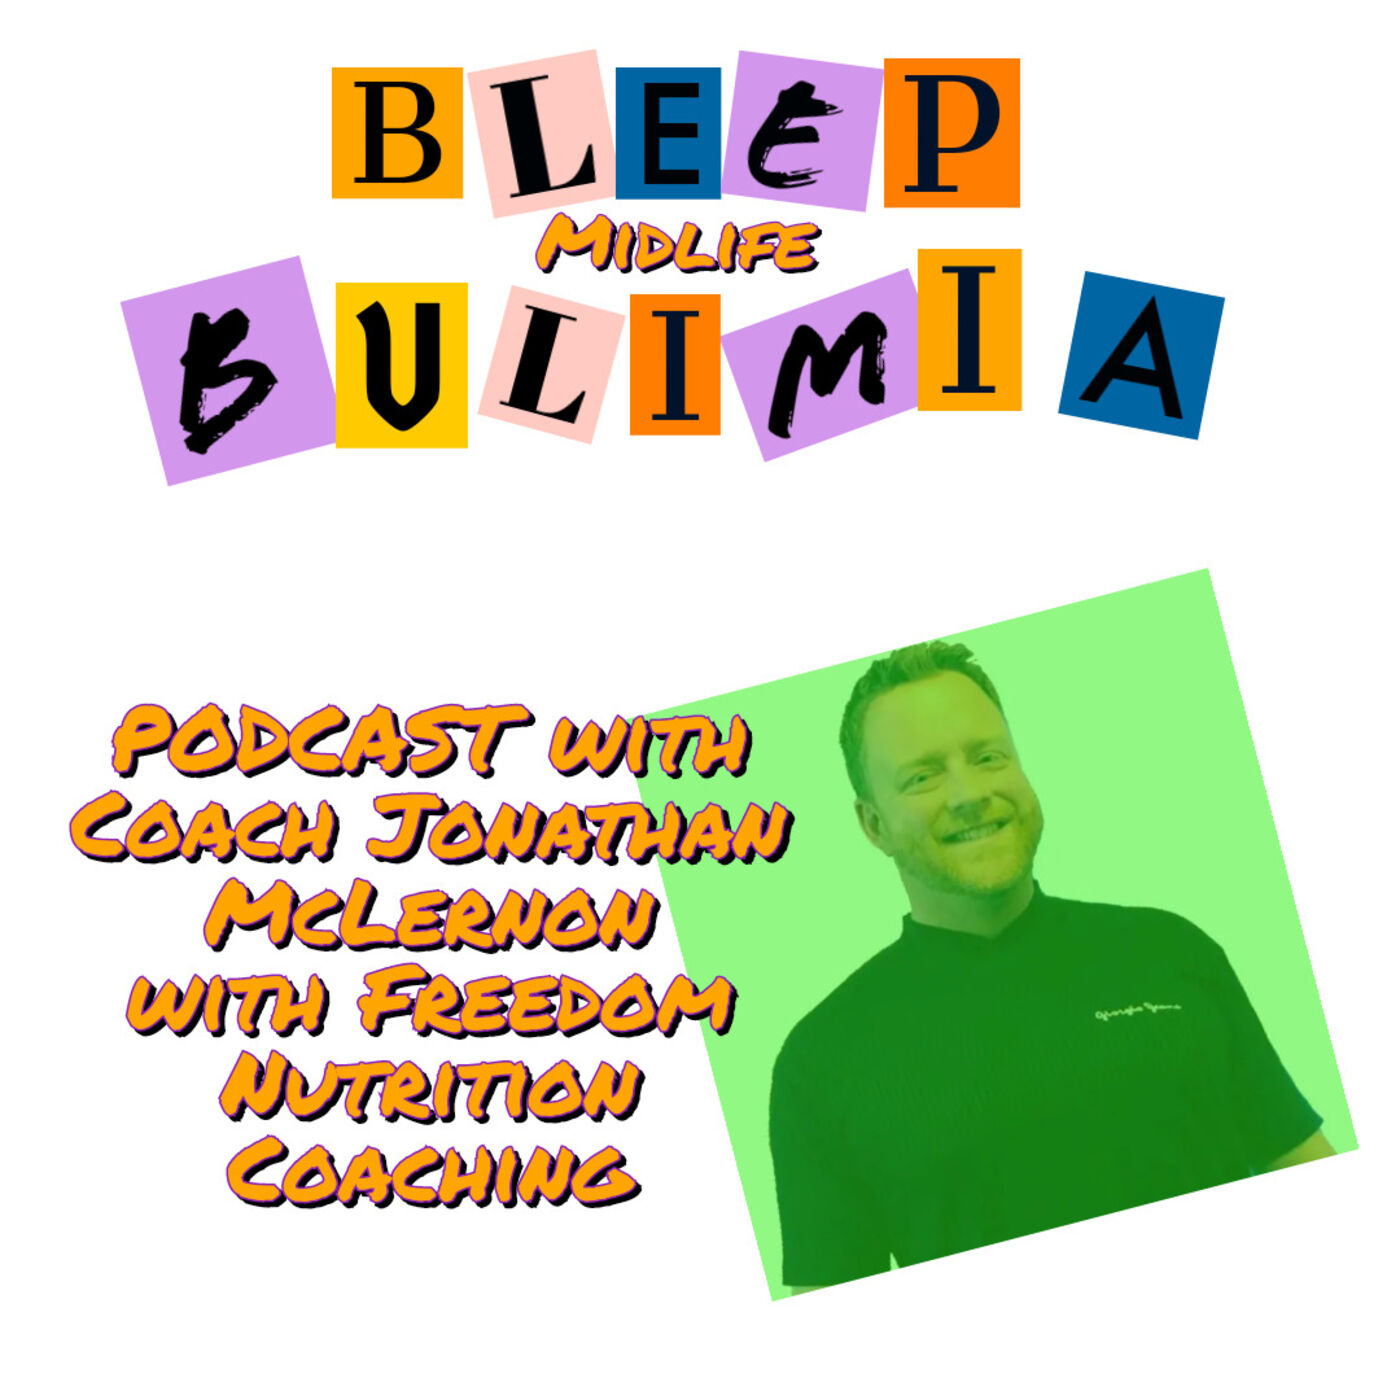 Bleep Bulimia Episode 48 with Coach Jonathan McLernon with Freedom Nutrition Coaching on Building A Healthy Relationship With Yourself and Food